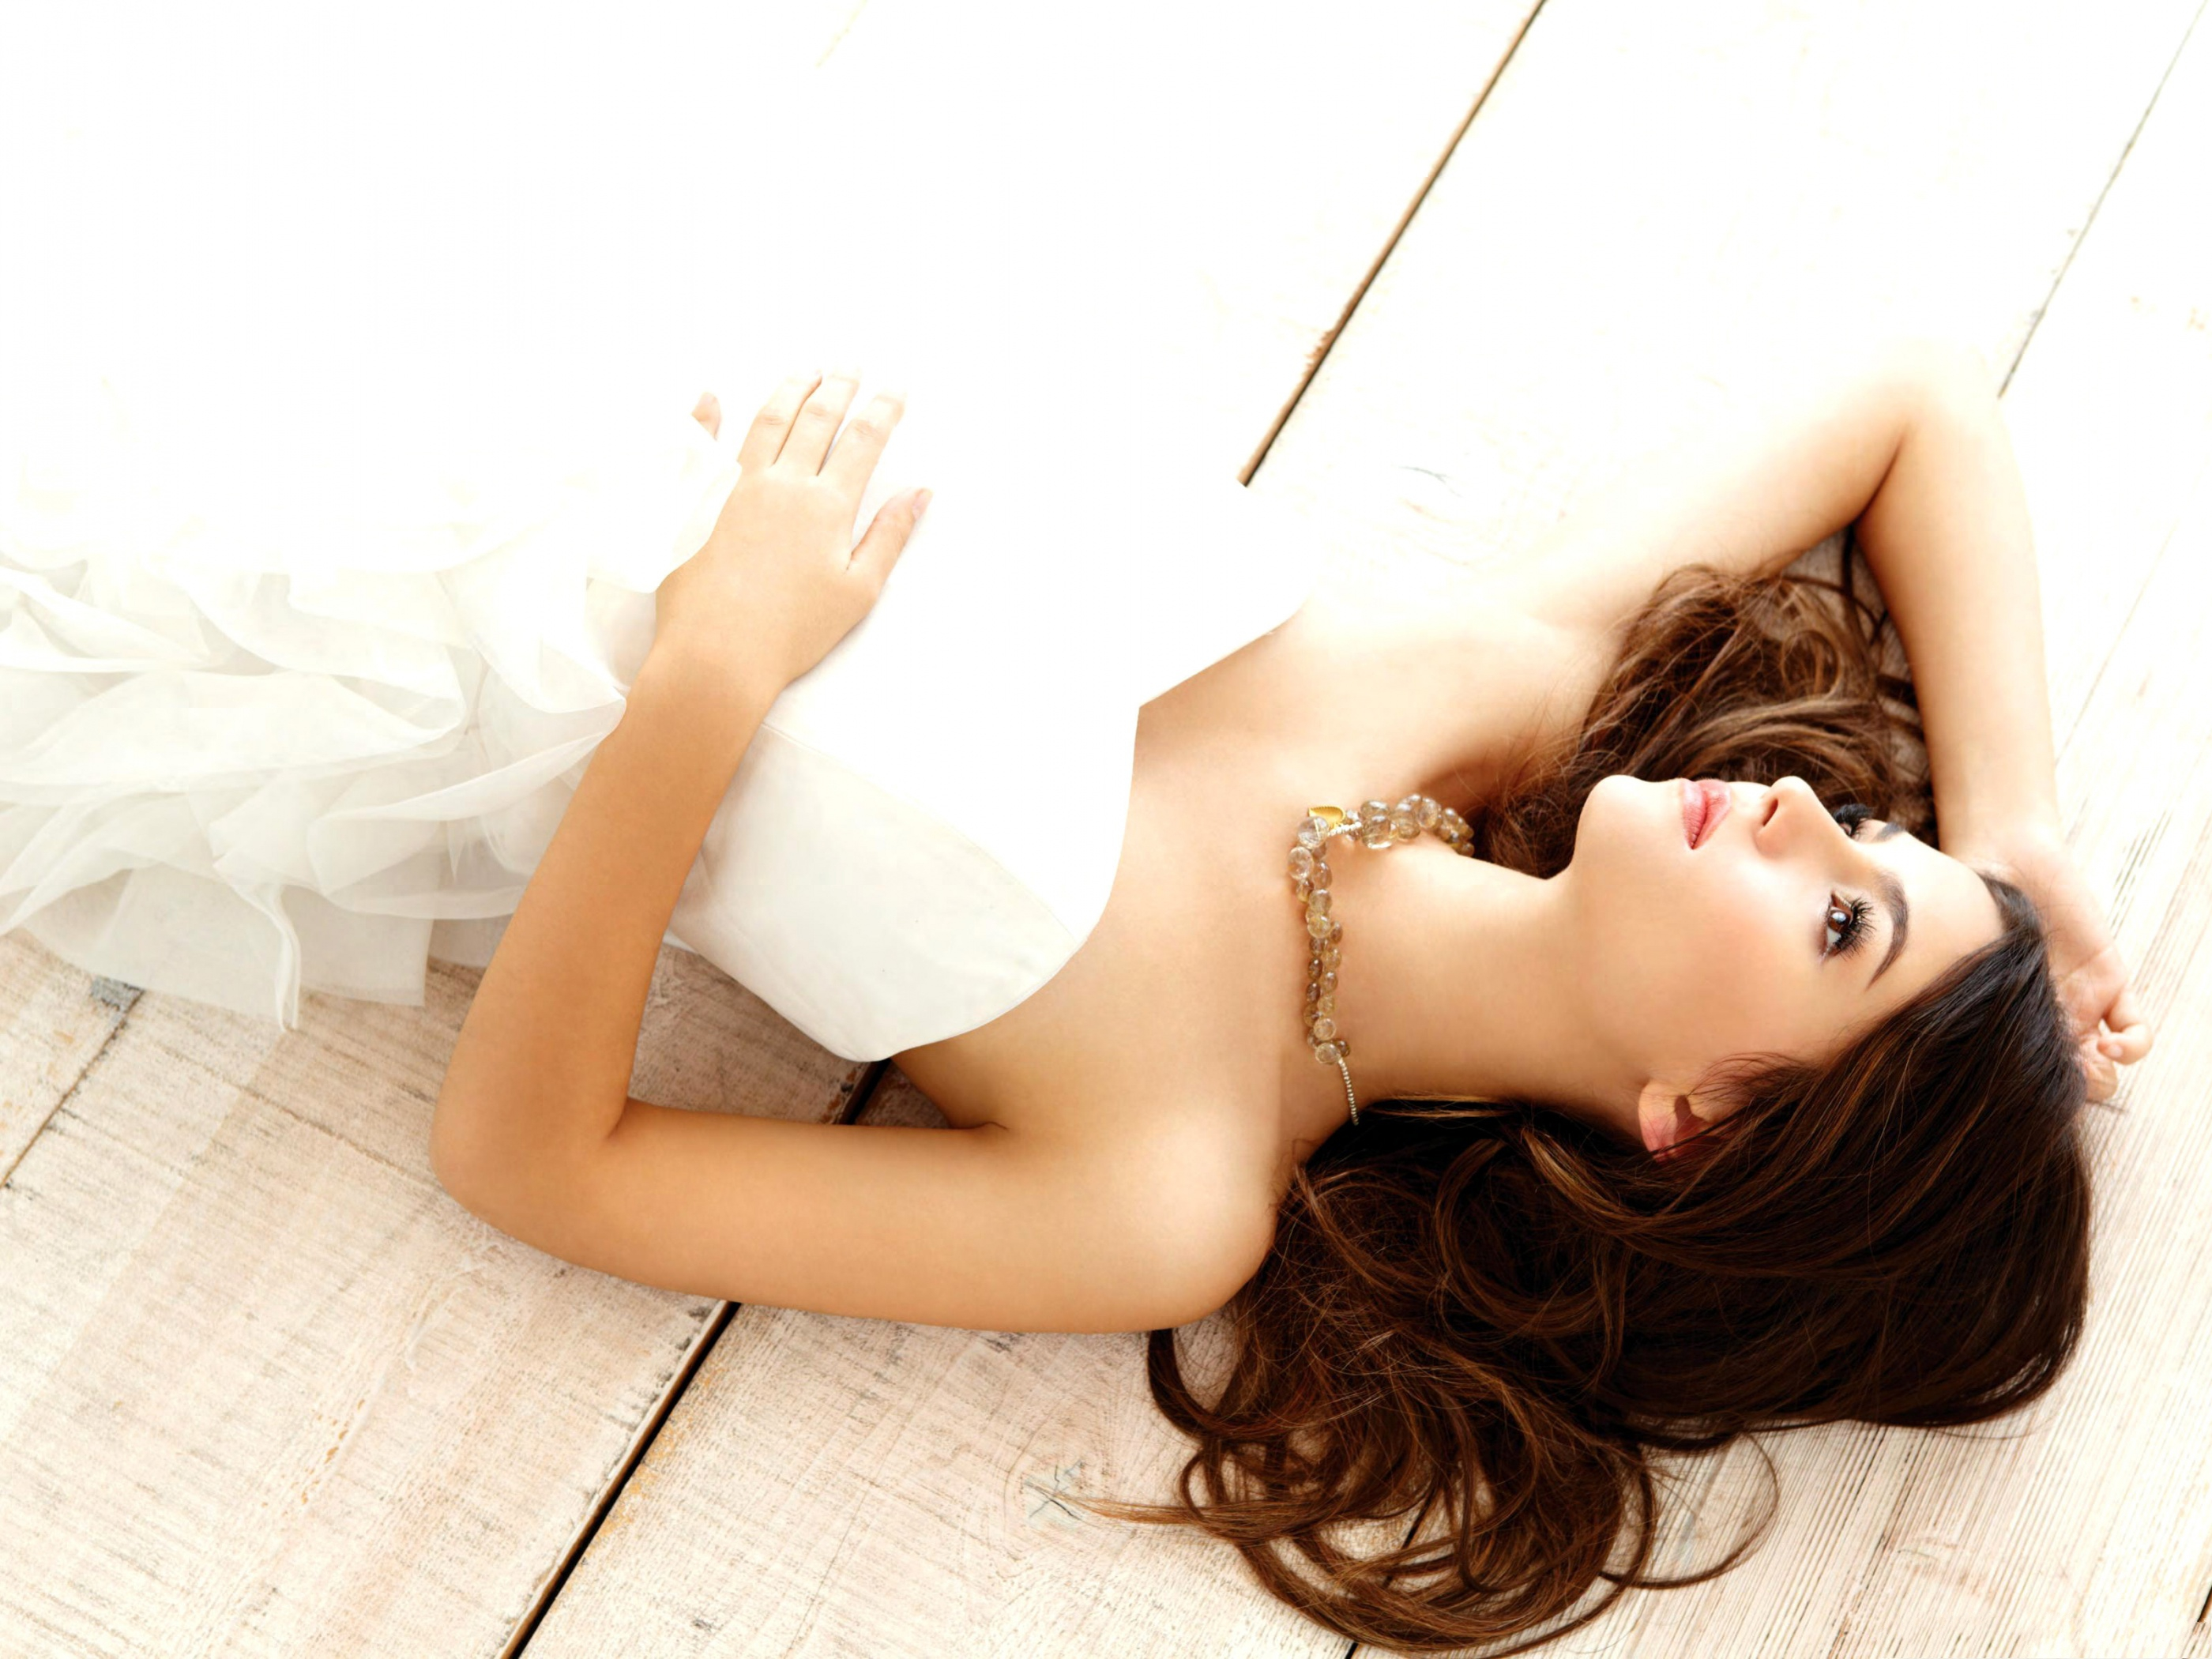 click to free download the wallpaper--Beautiful Girl Photography, White Wedding Dress, Lying on Floor 2800X2100 free wallpaper download